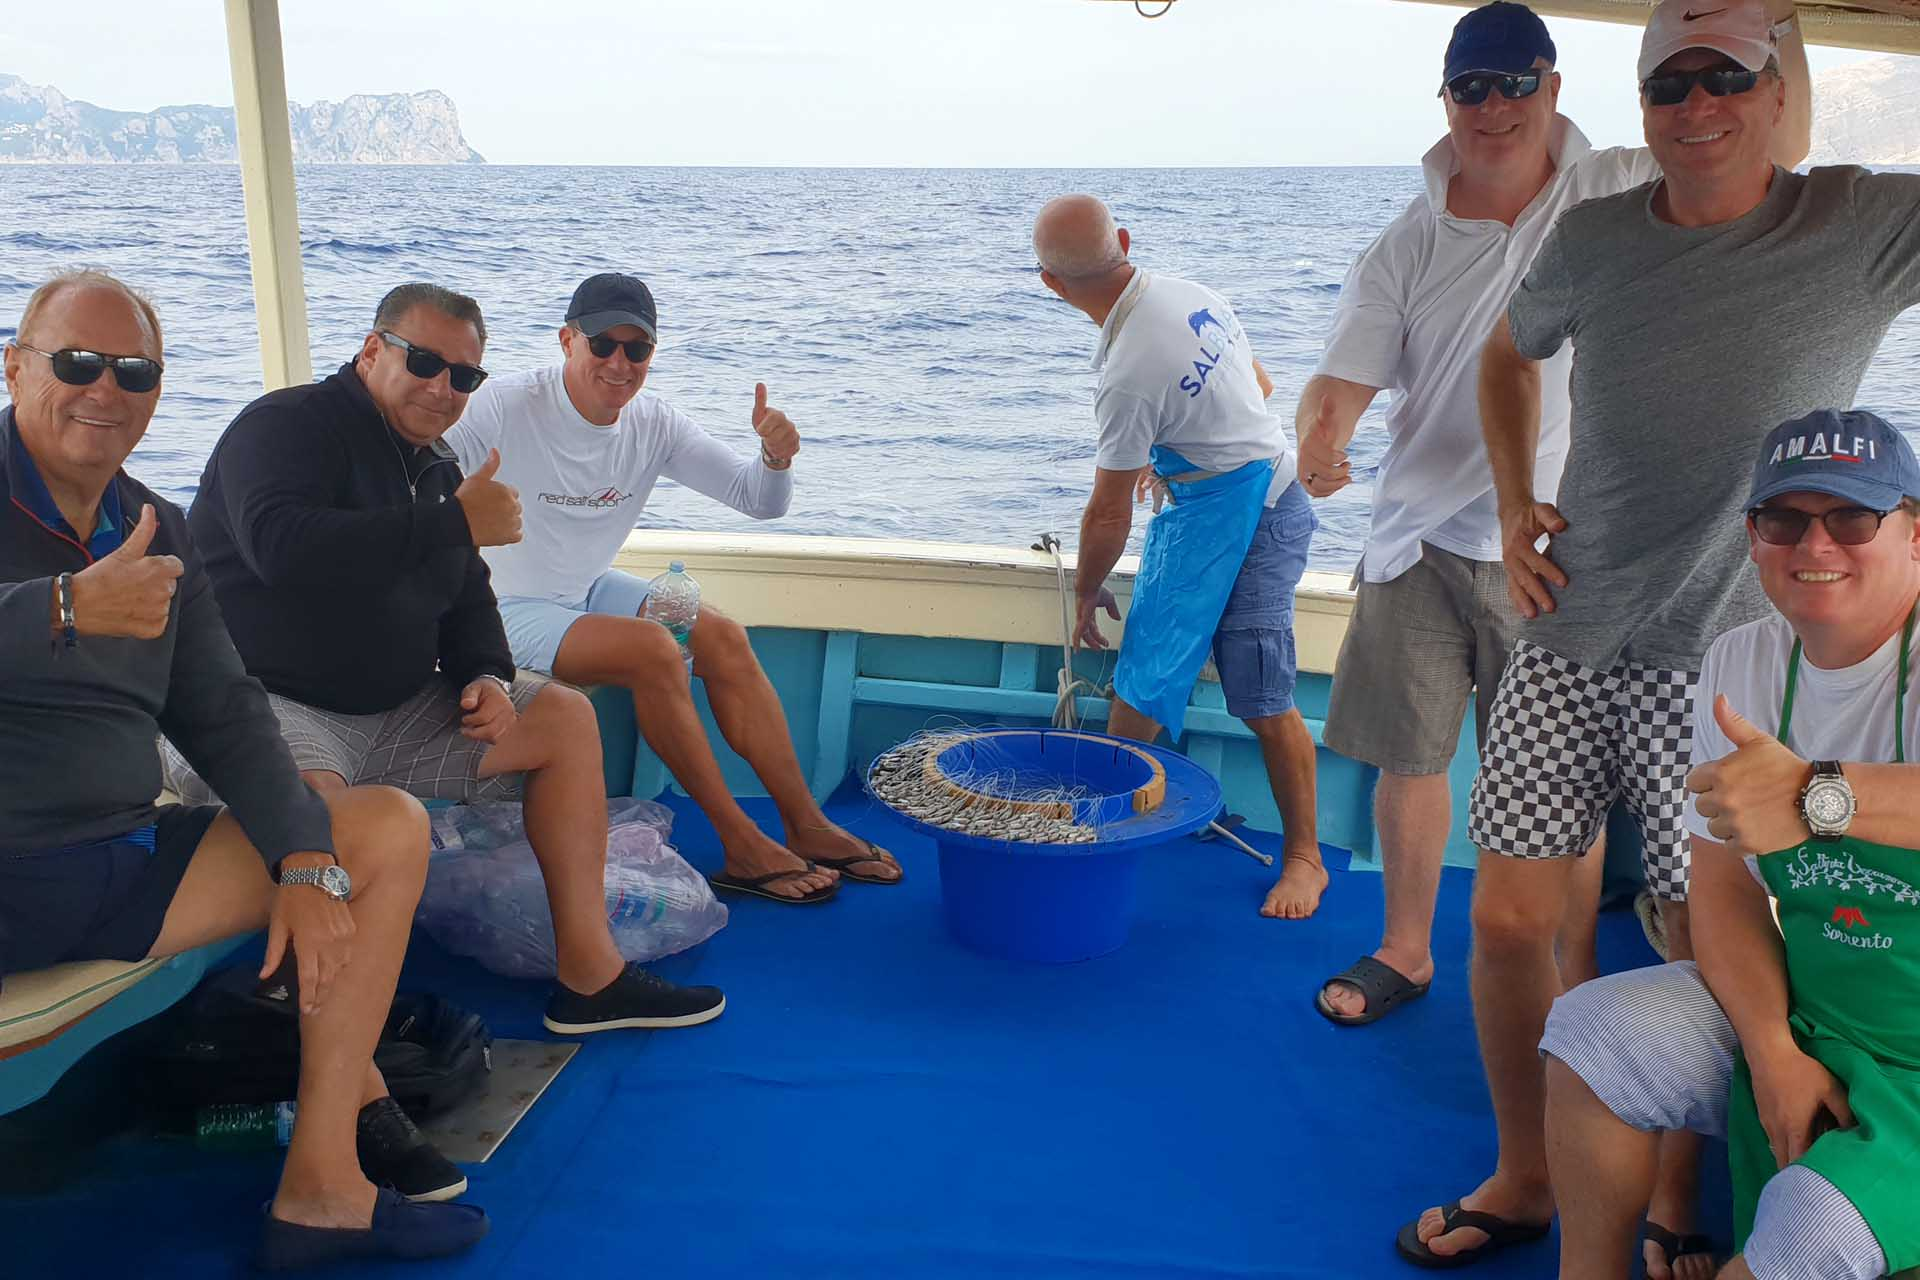 Fishing tour for groups in Sorrento